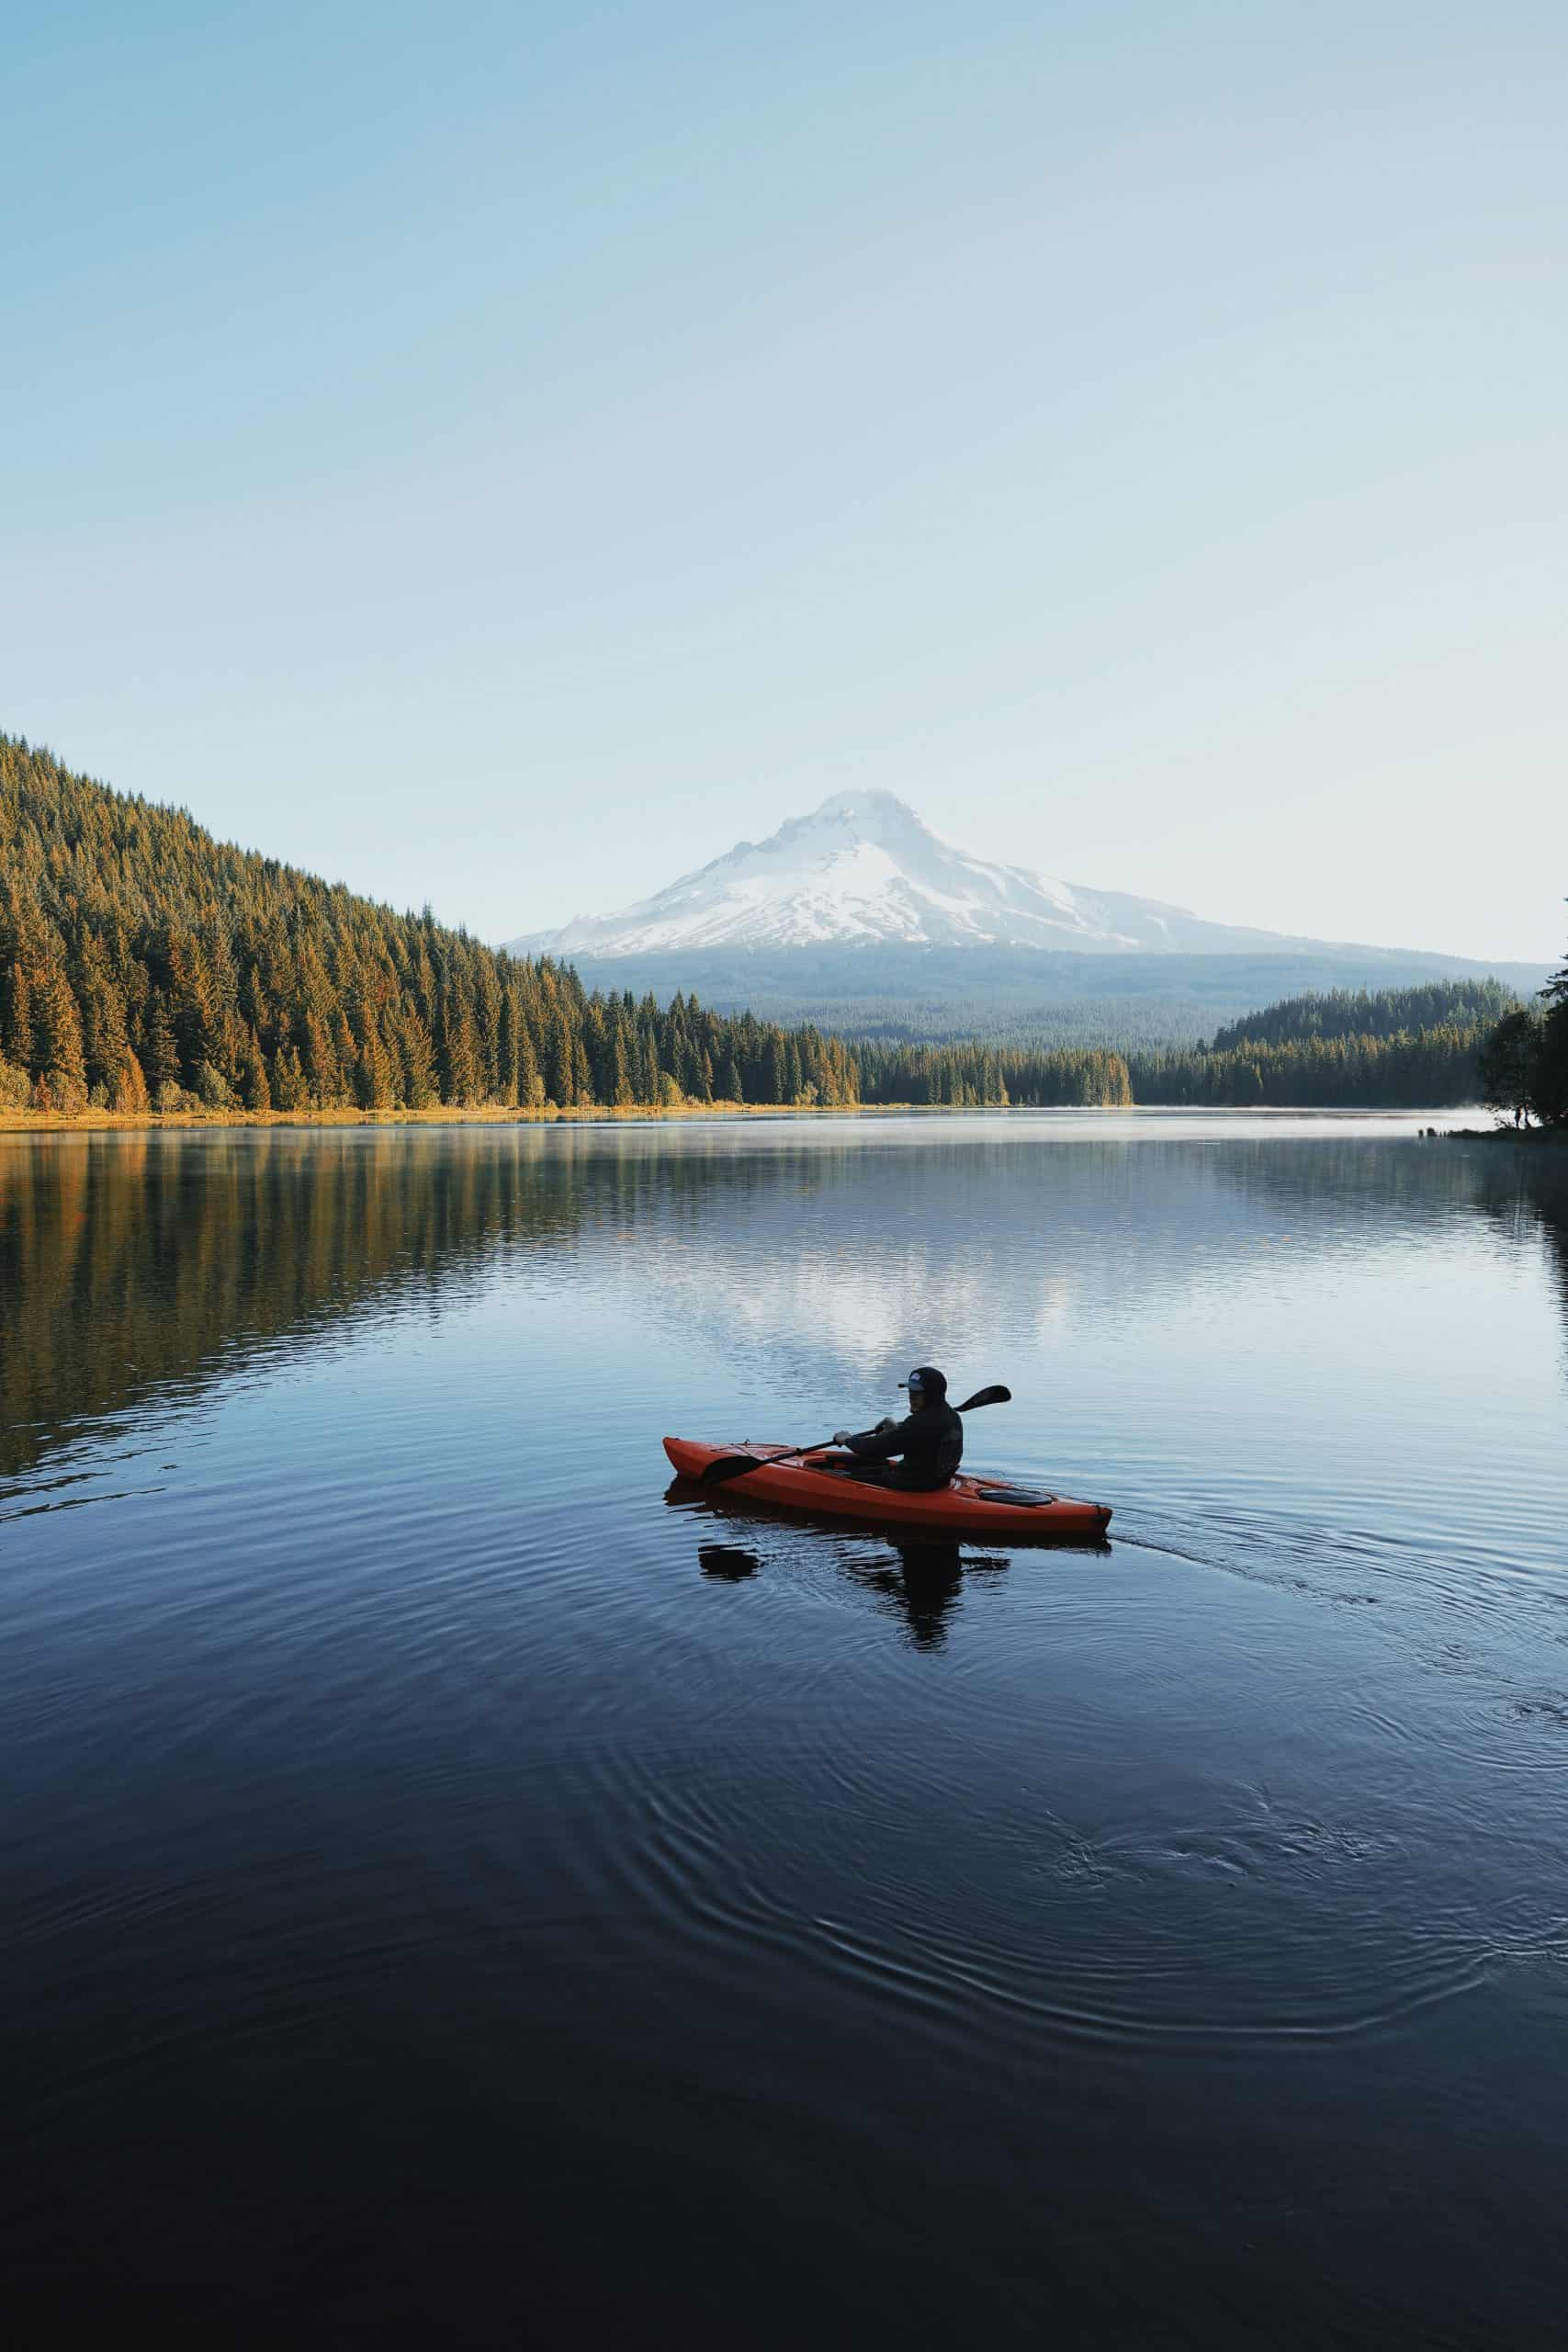 person riding kayak on river in front of mountains and forest in the background